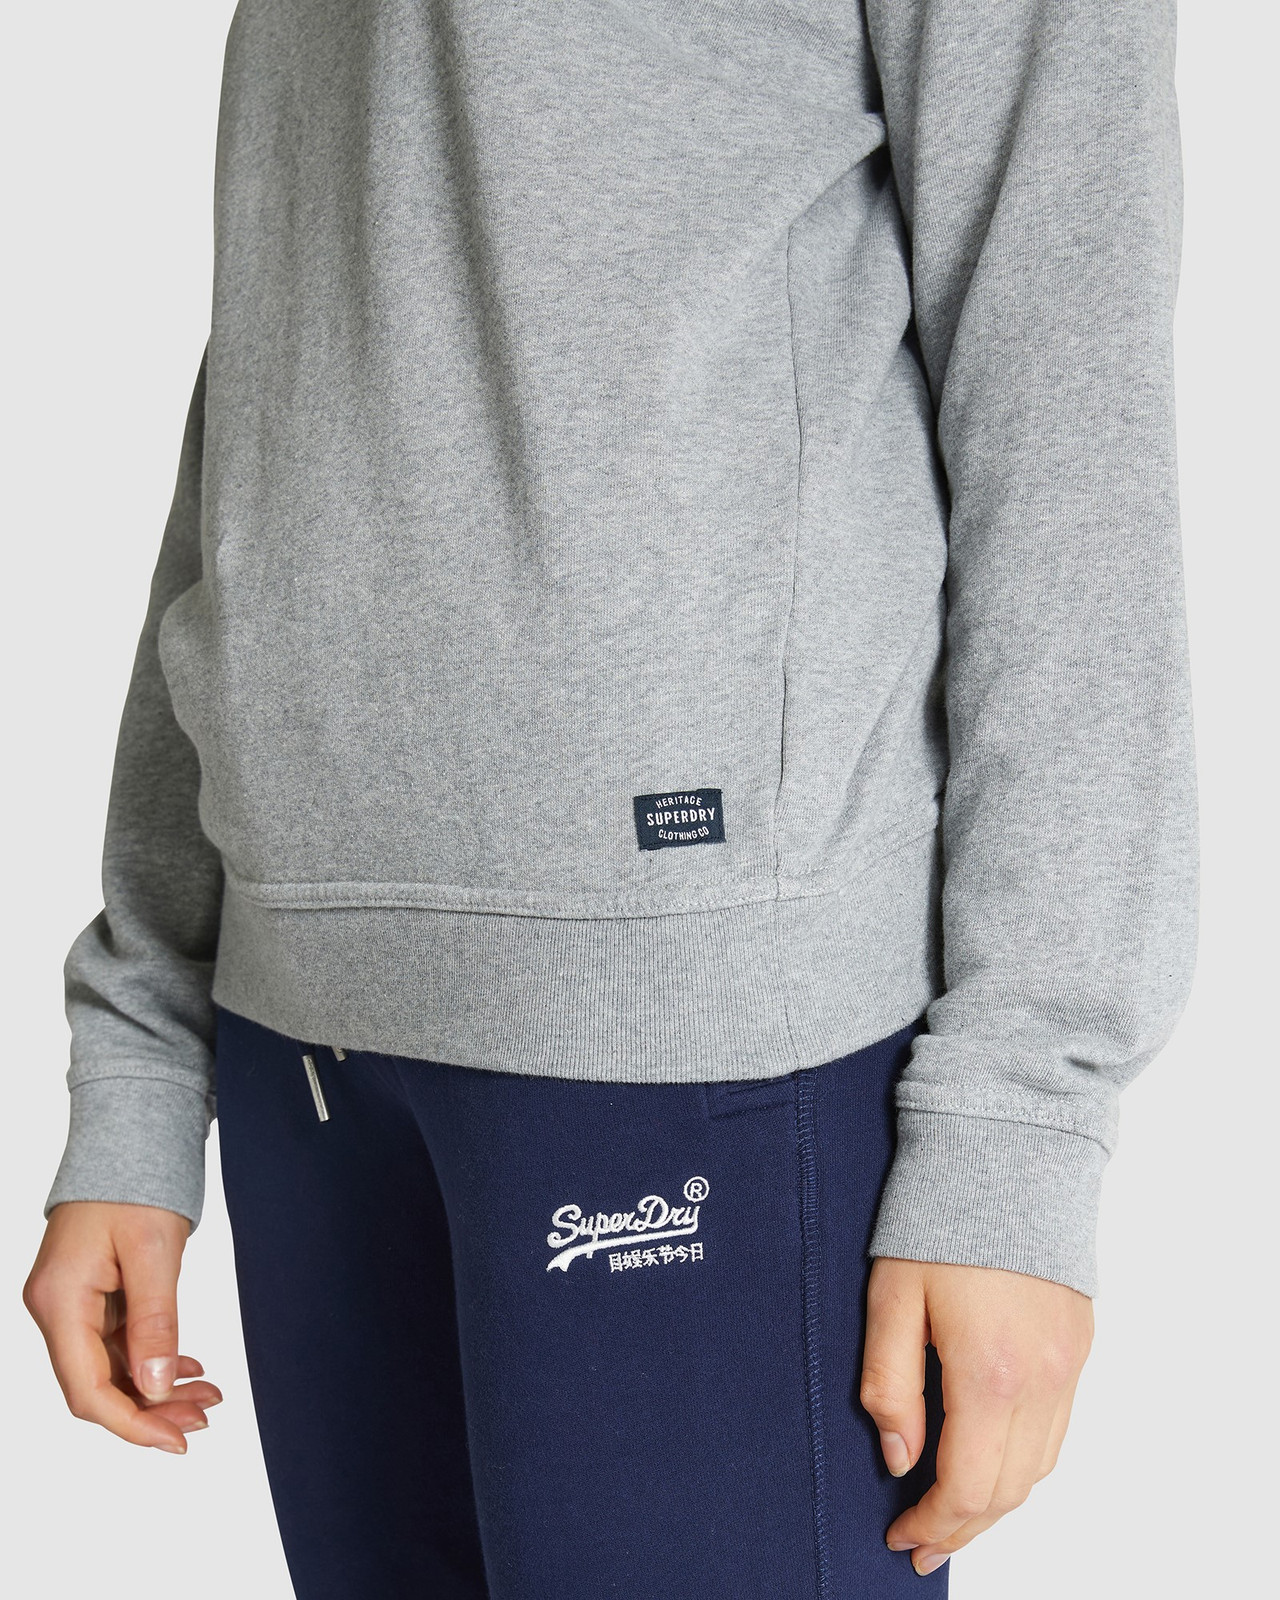 Superdry Womens SUPERSTATE SWEAT Grey Sweat Tops 4